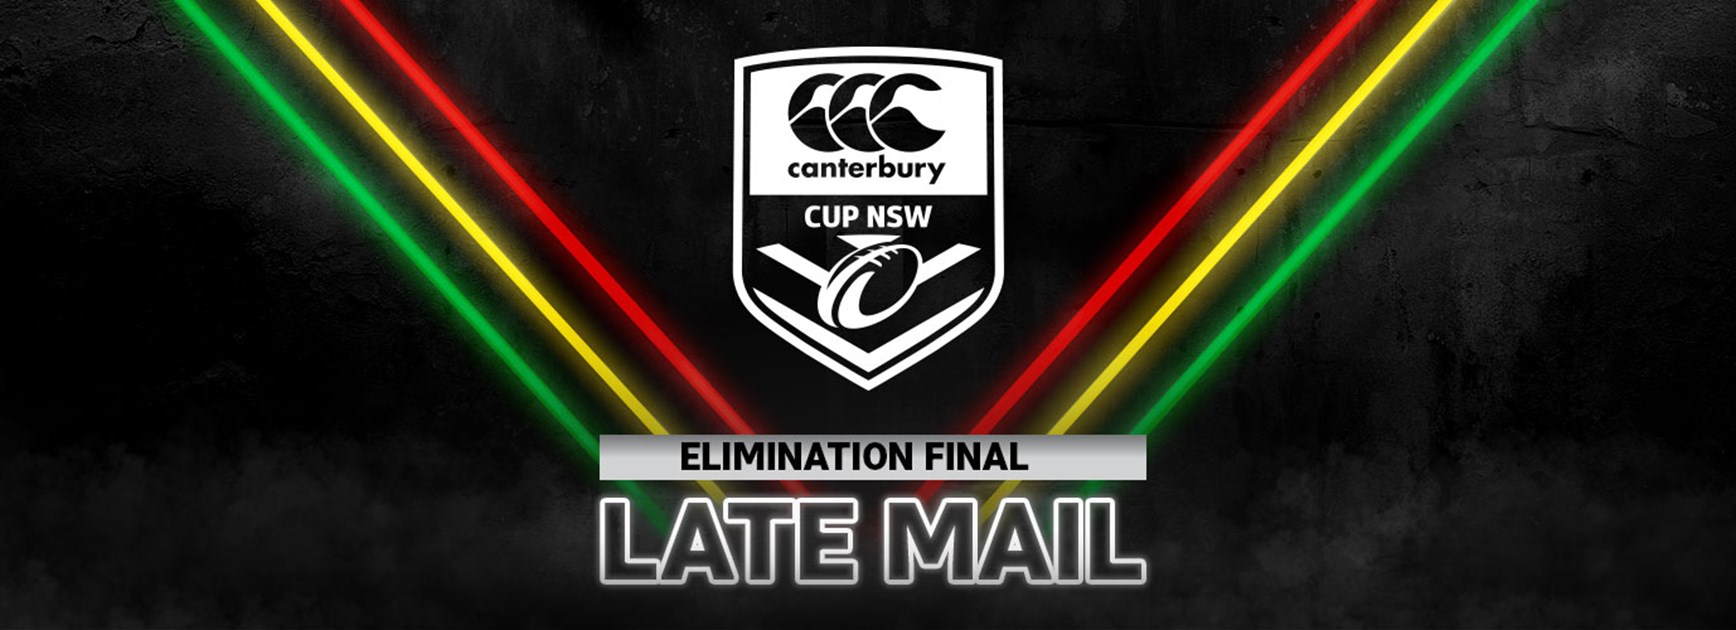 Canterbury Cup Late Mail: Elimination Final